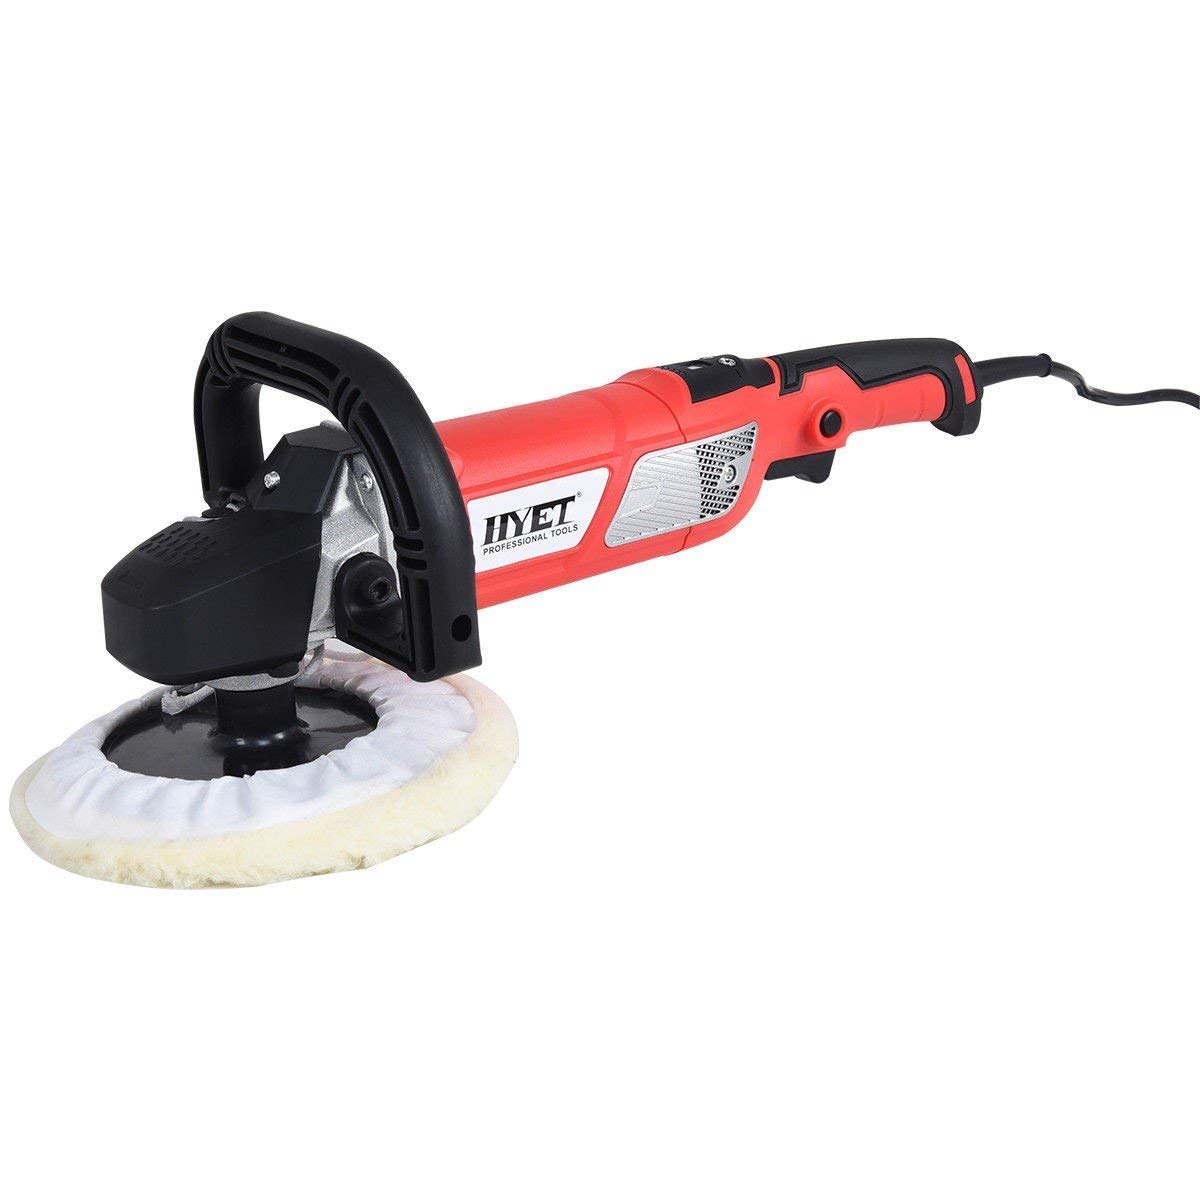 "Car Polisher Electric Buffer 7"" Variable Speed Waxer Sander Detail Boat Machine MD Group"